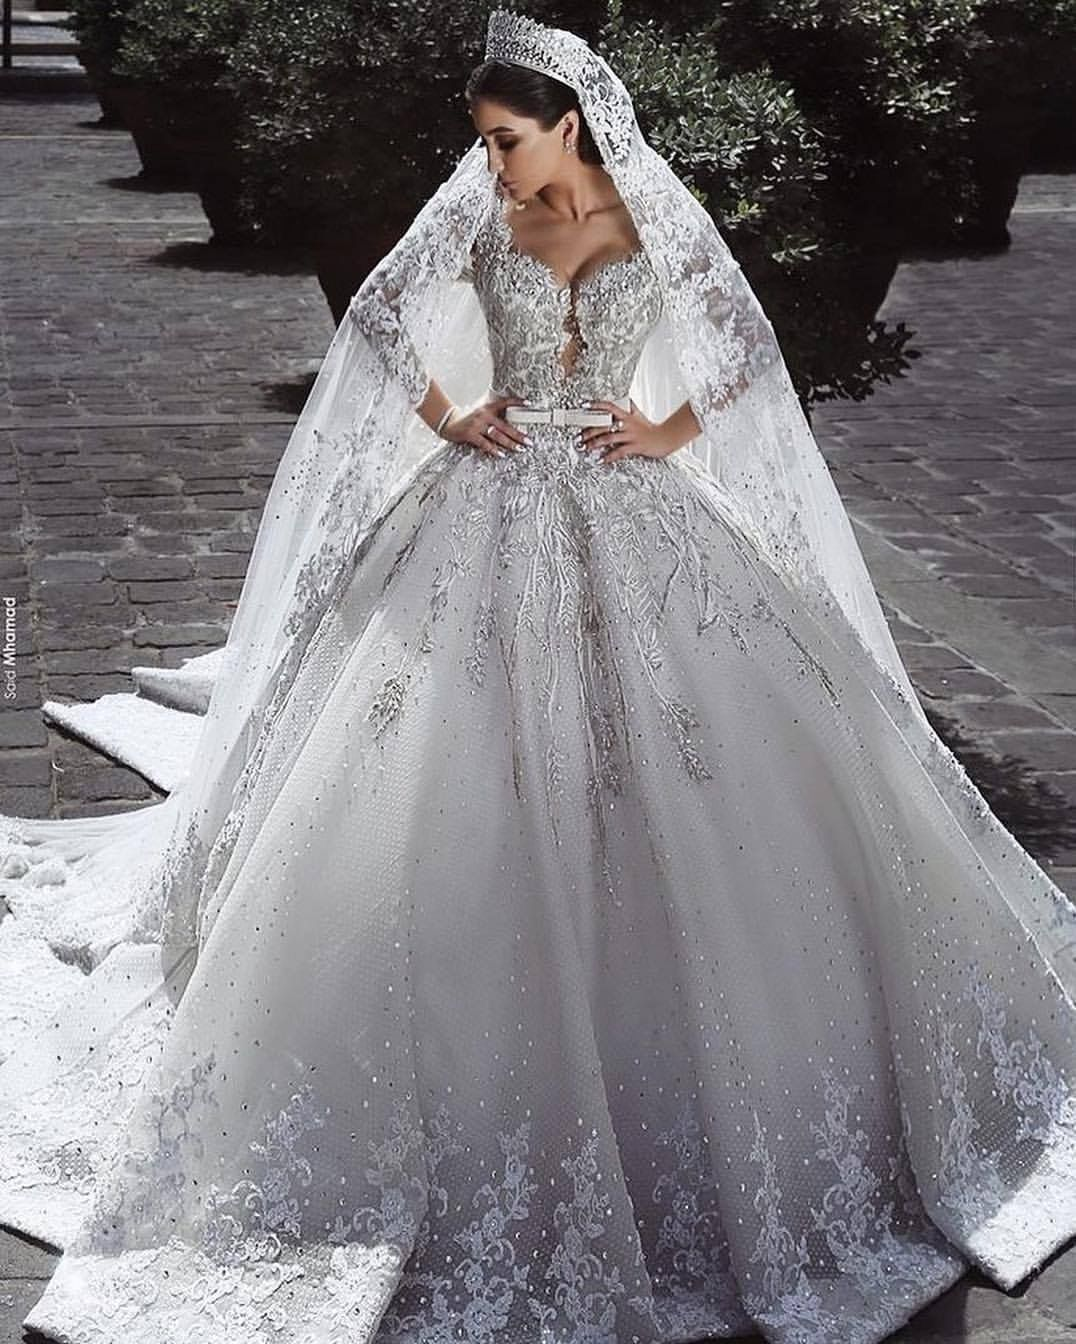 Coiffure Mariage Robe Princesse Follow Leenaloves1d For More It 39s A Mix In 2019